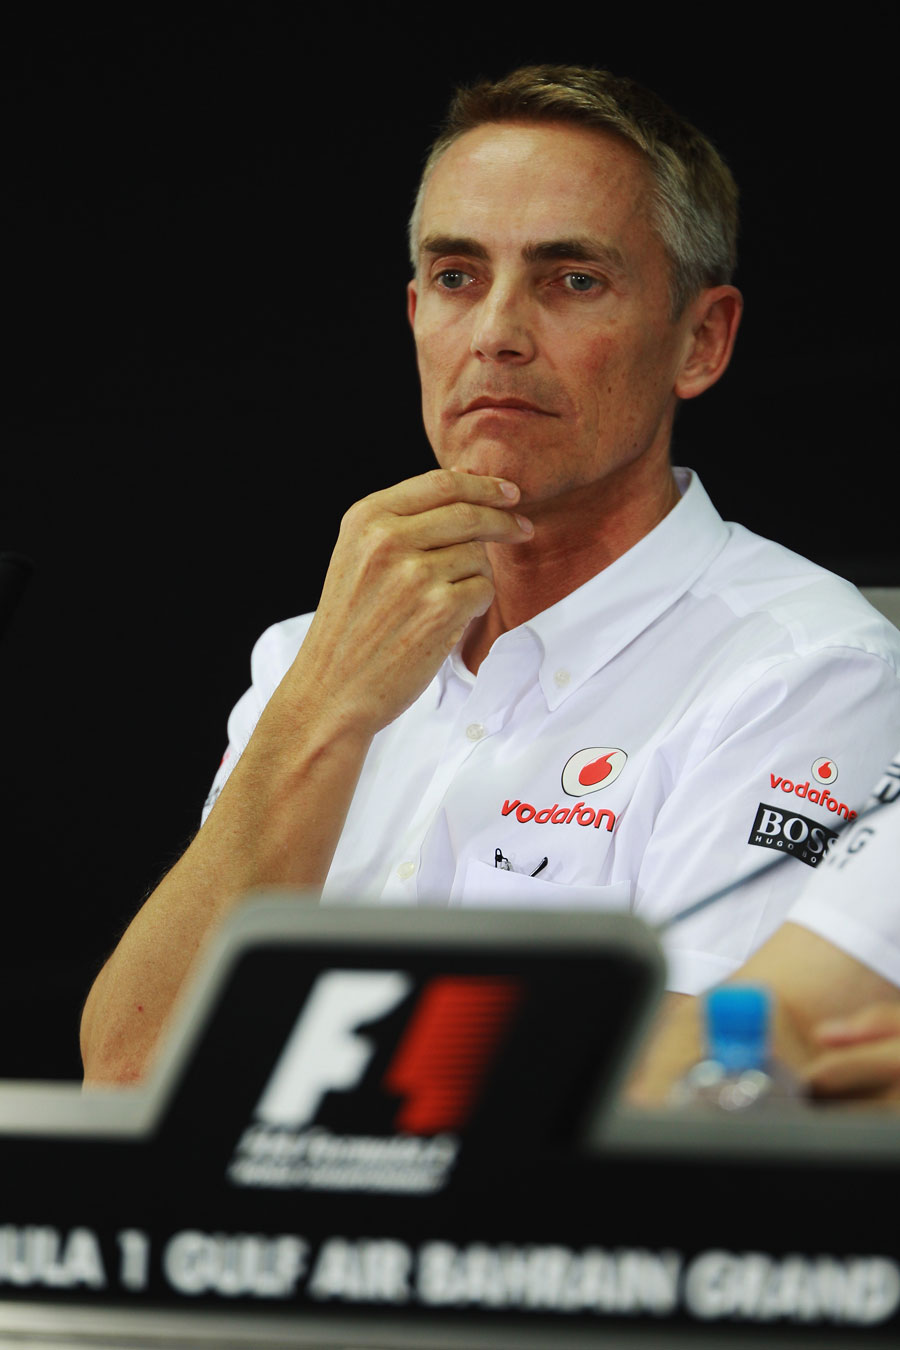 Martin Whitmarsh stares in to the middle distance during the FIA press conference on Friday